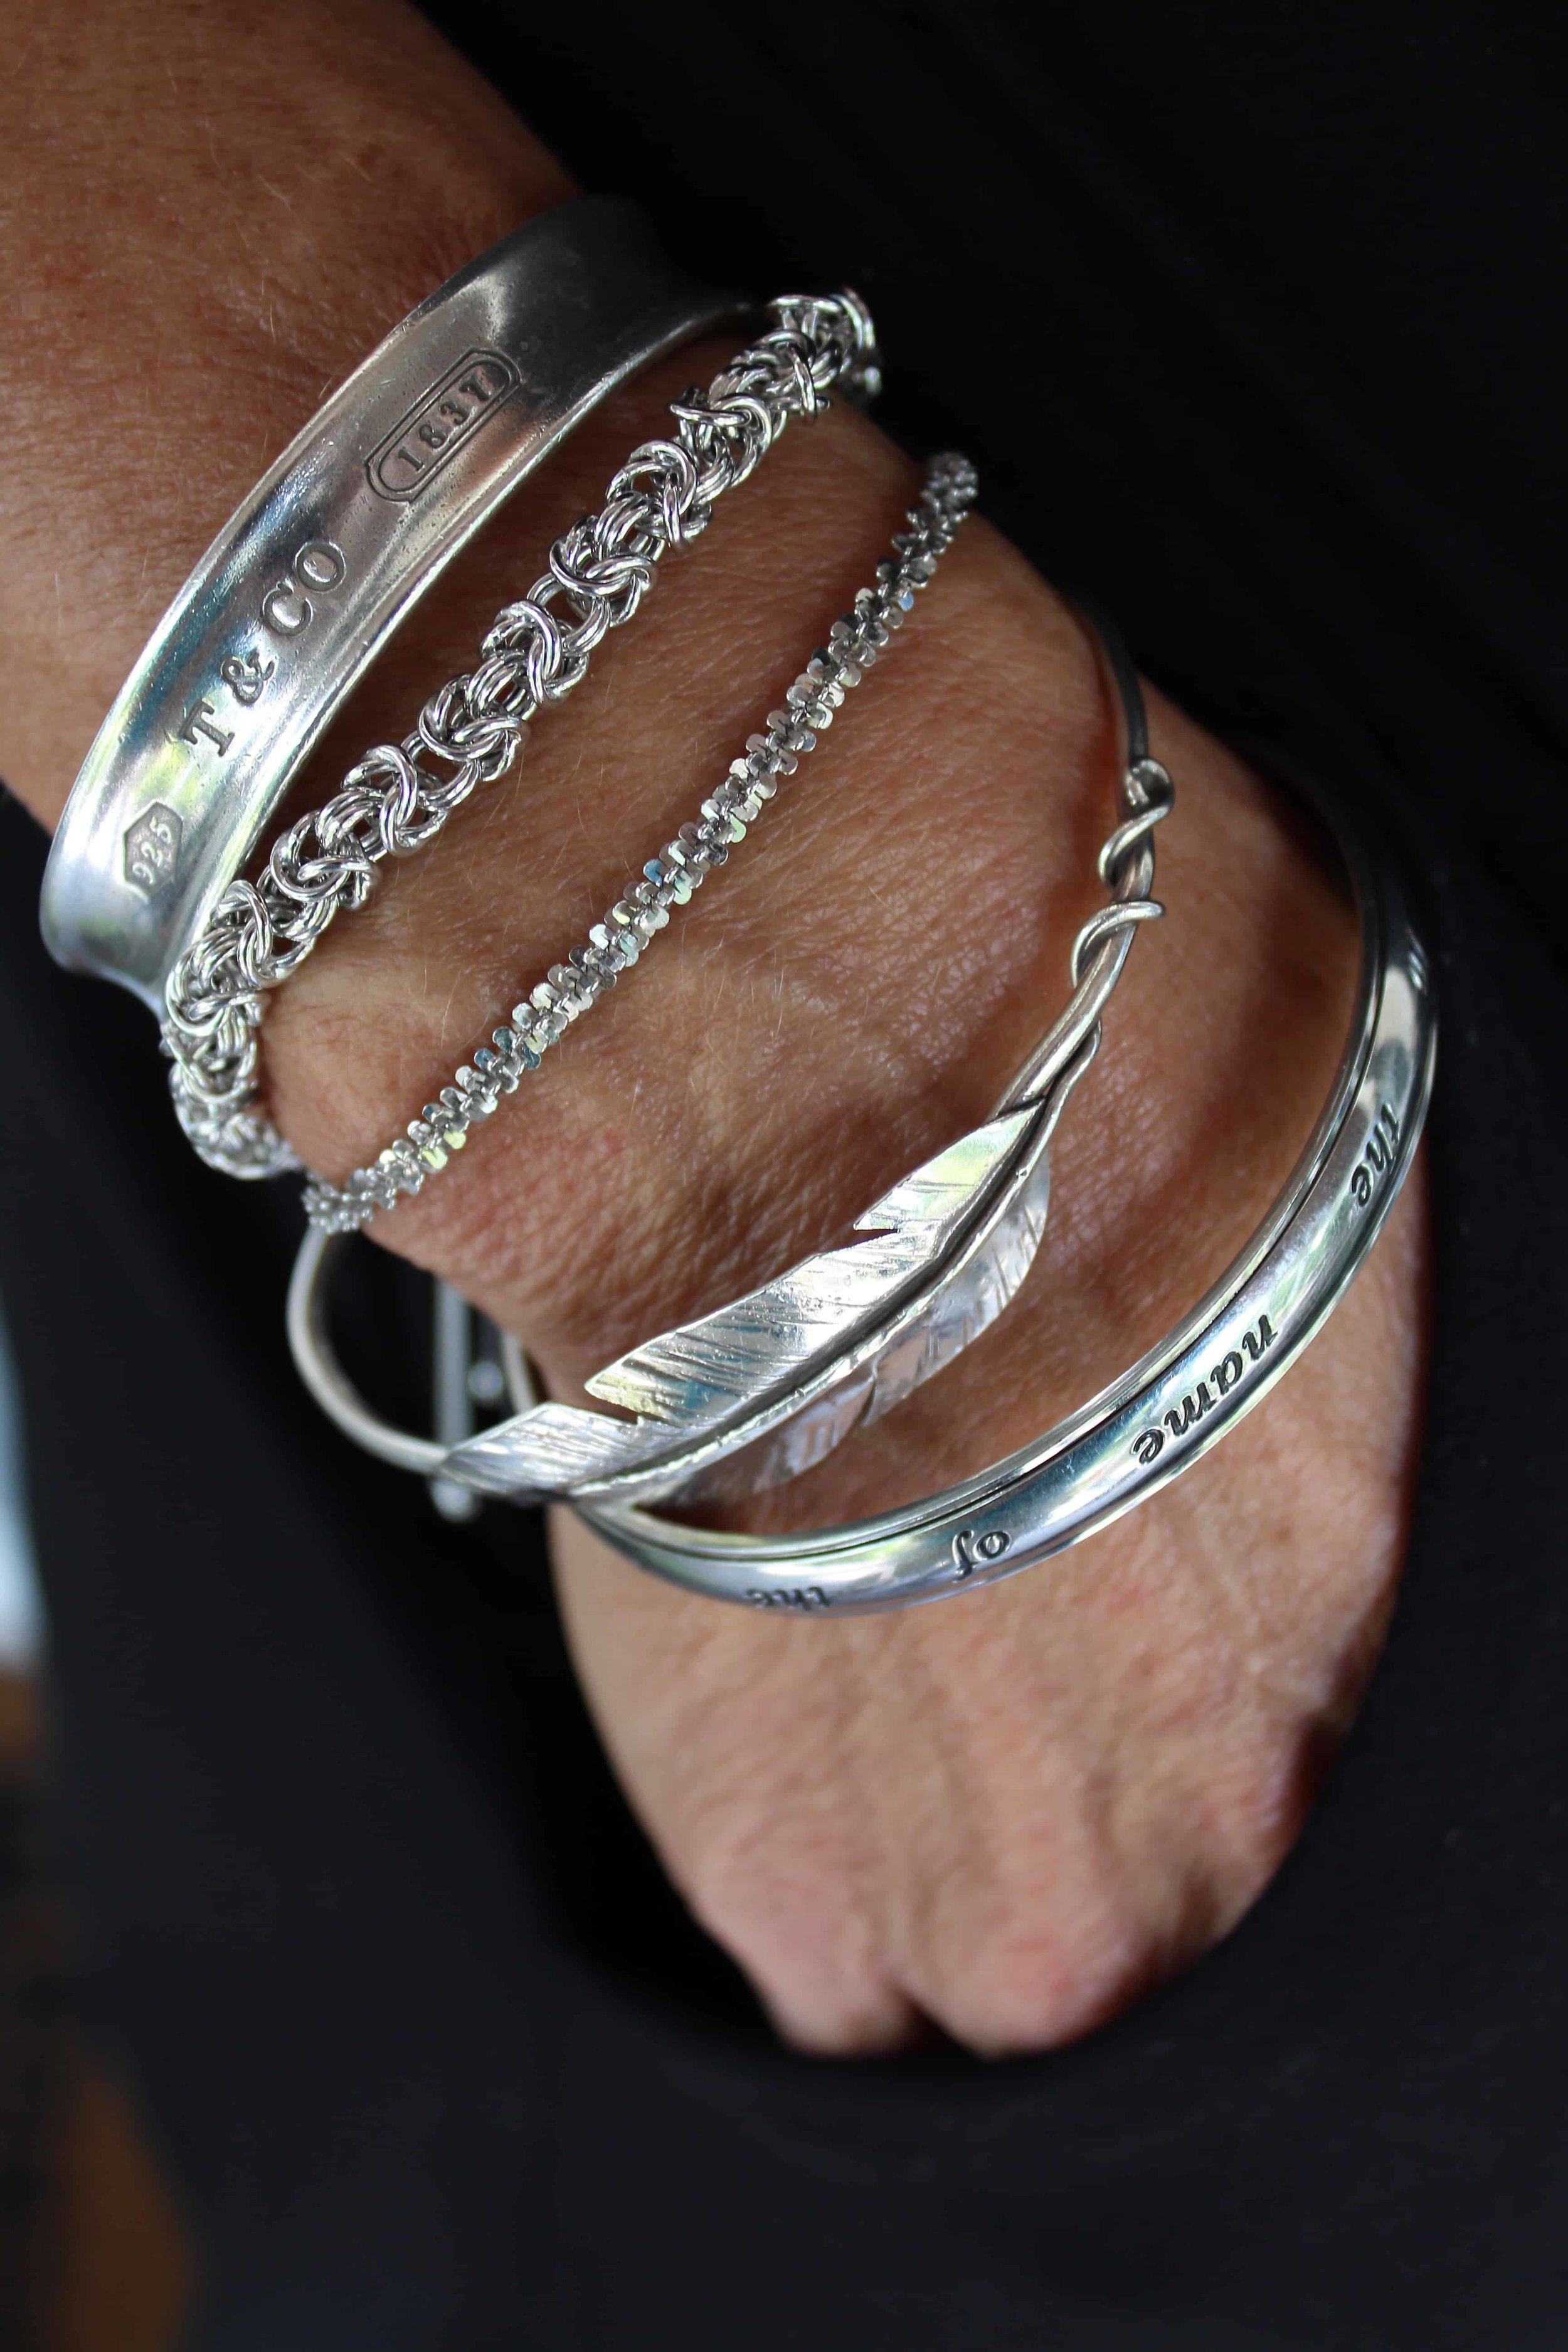 The second bracelet underneath my Tiffany bracelet is the Silvertone Byzantine and the next is the Silvertone Margherita.